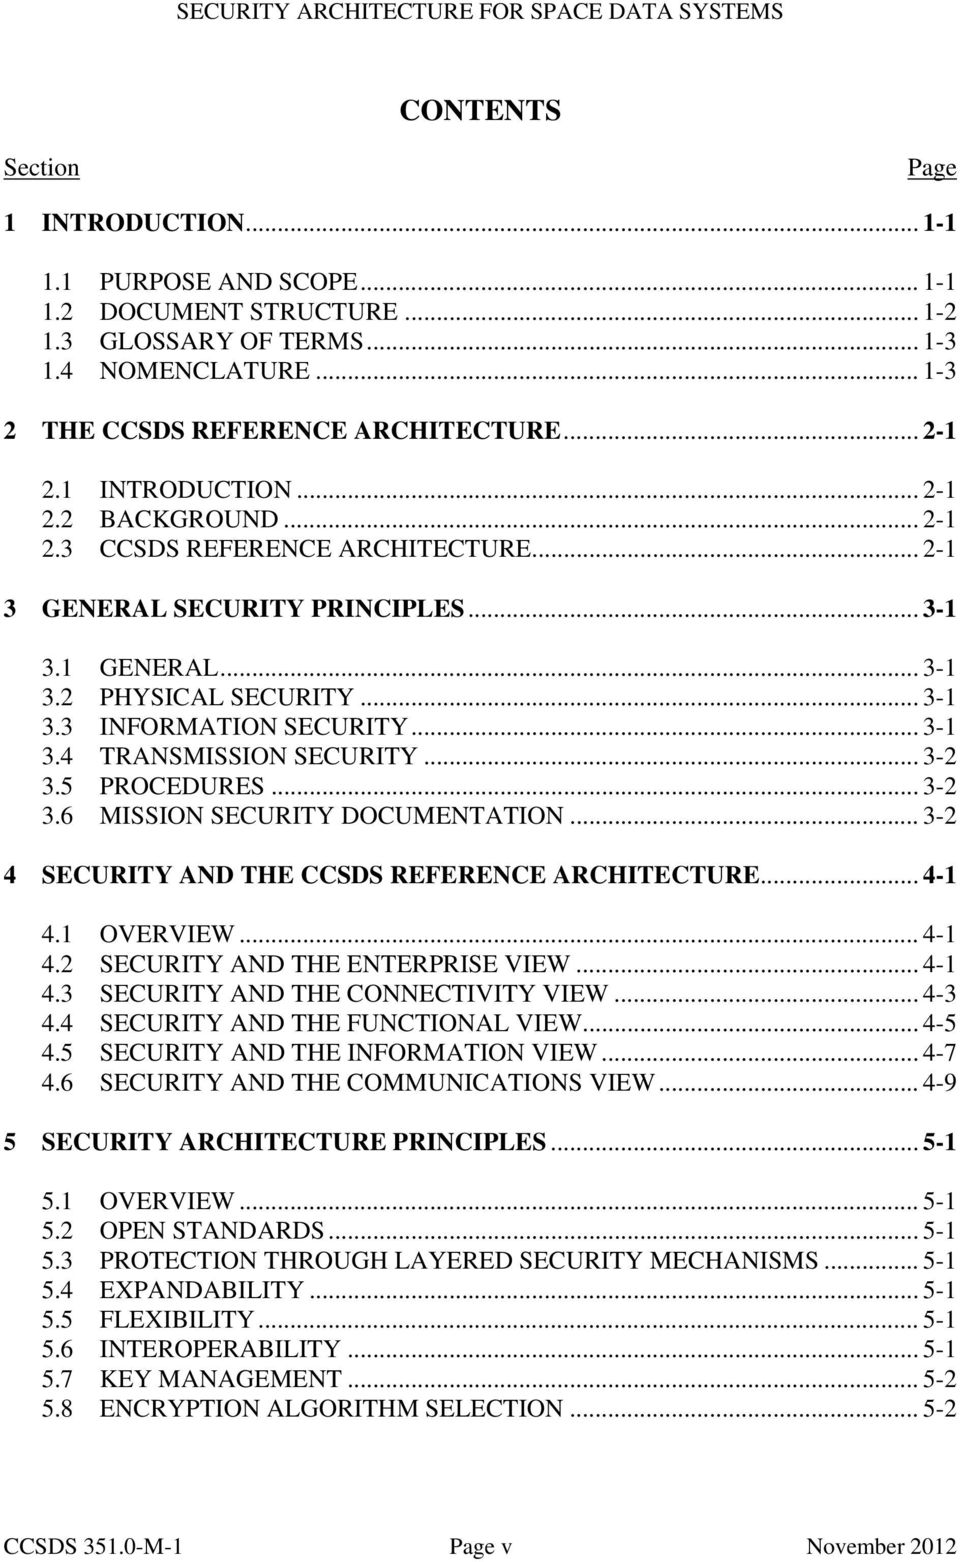 .. 3-1 3.4 TRANSMISSION SECURITY... 3-2 3.5 PROCEDURES... 3-2 3.6 MISSION SECURITY DOCUMENTATION... 3-2 4 SECURITY AND THE CCSDS REFERENCE ARCHITECTURE... 4-1 4.1 OVERVIEW... 4-1 4.2 SECURITY AND THE ENTERPRISE VIEW.